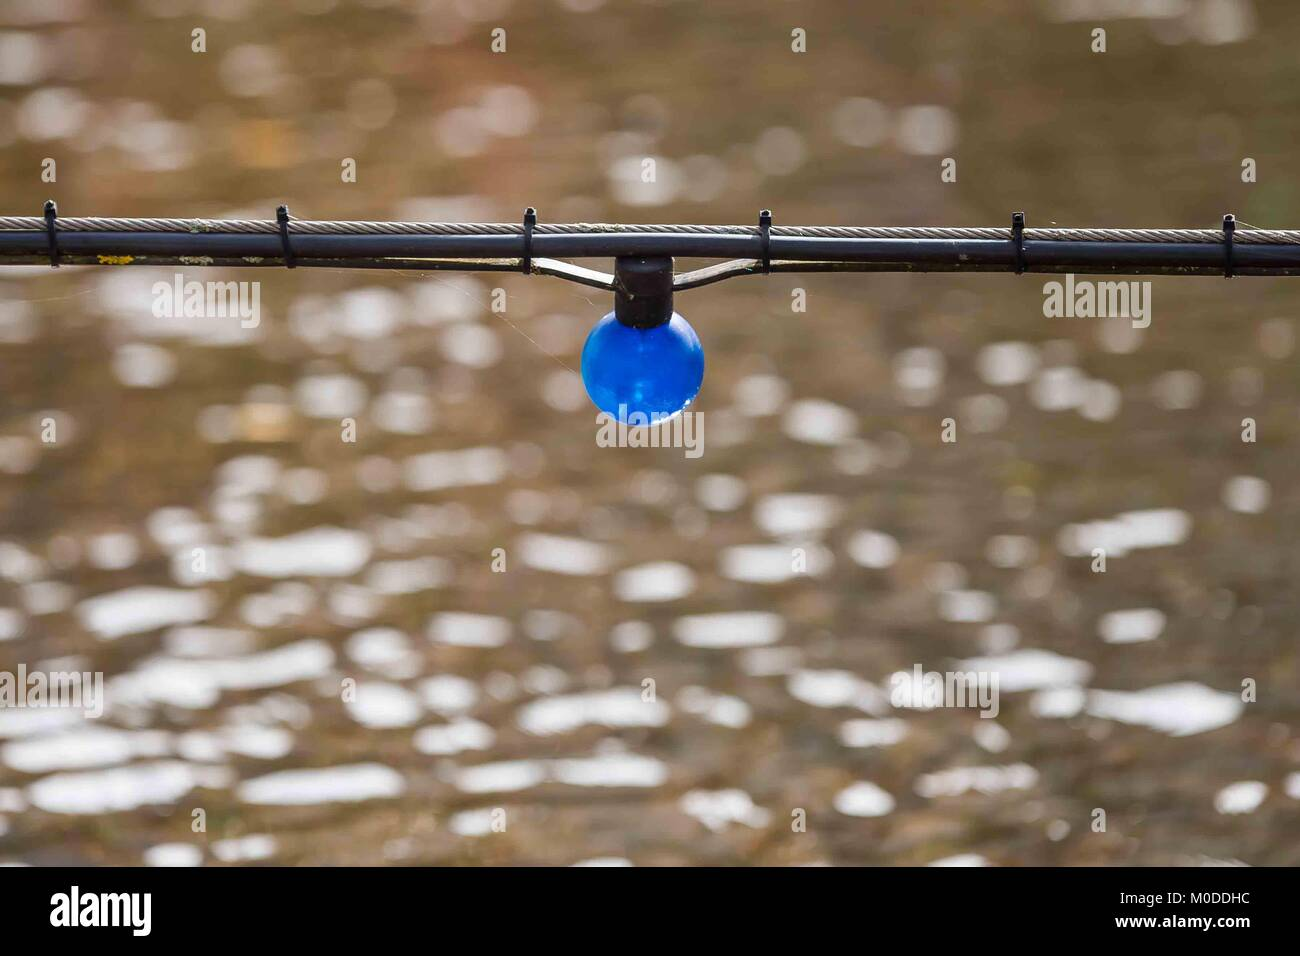 Single electric light bulb hanging over a stream or river. - Stock Image